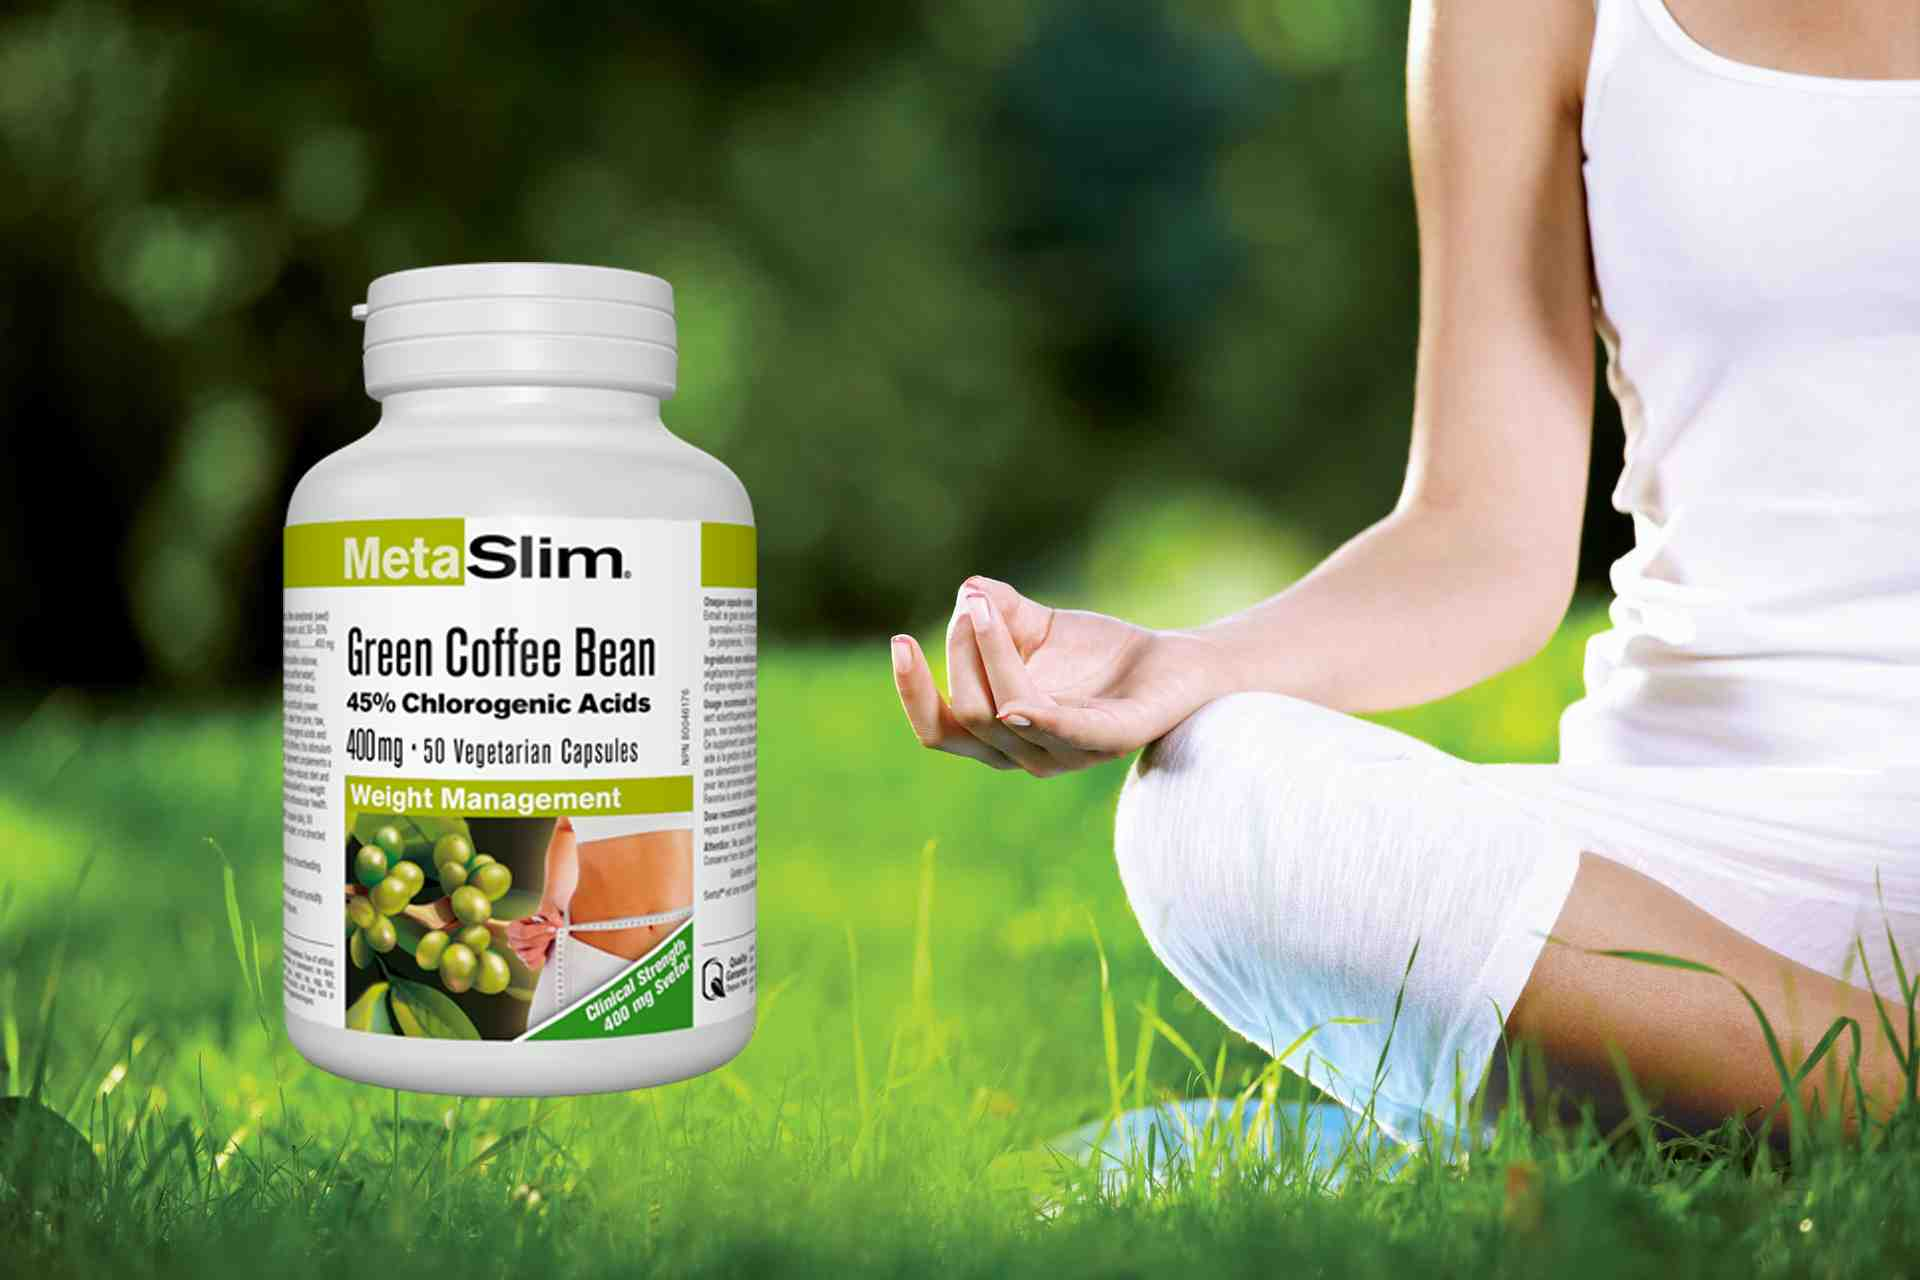 Green Coffee Bean Extract And Weight Loss Fact Or Fiction